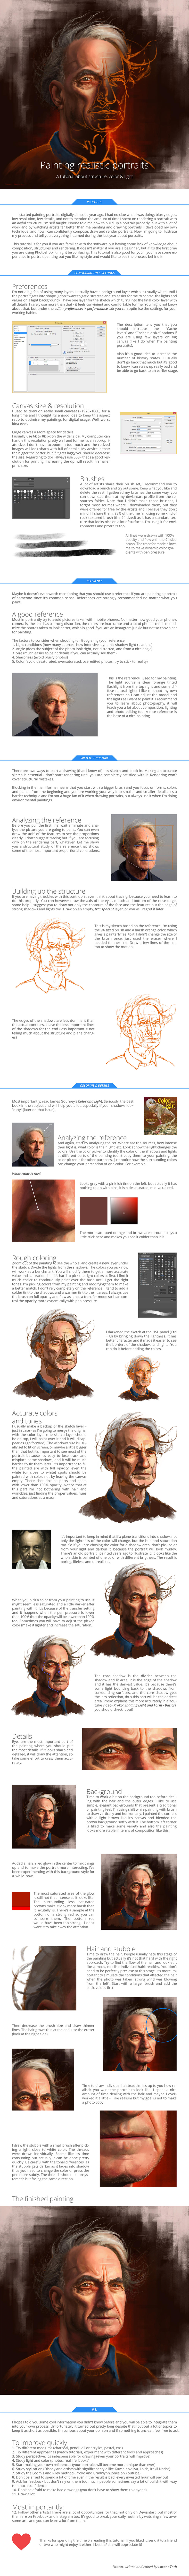 Painting realistic portraits - TUTORIAL by lorantart